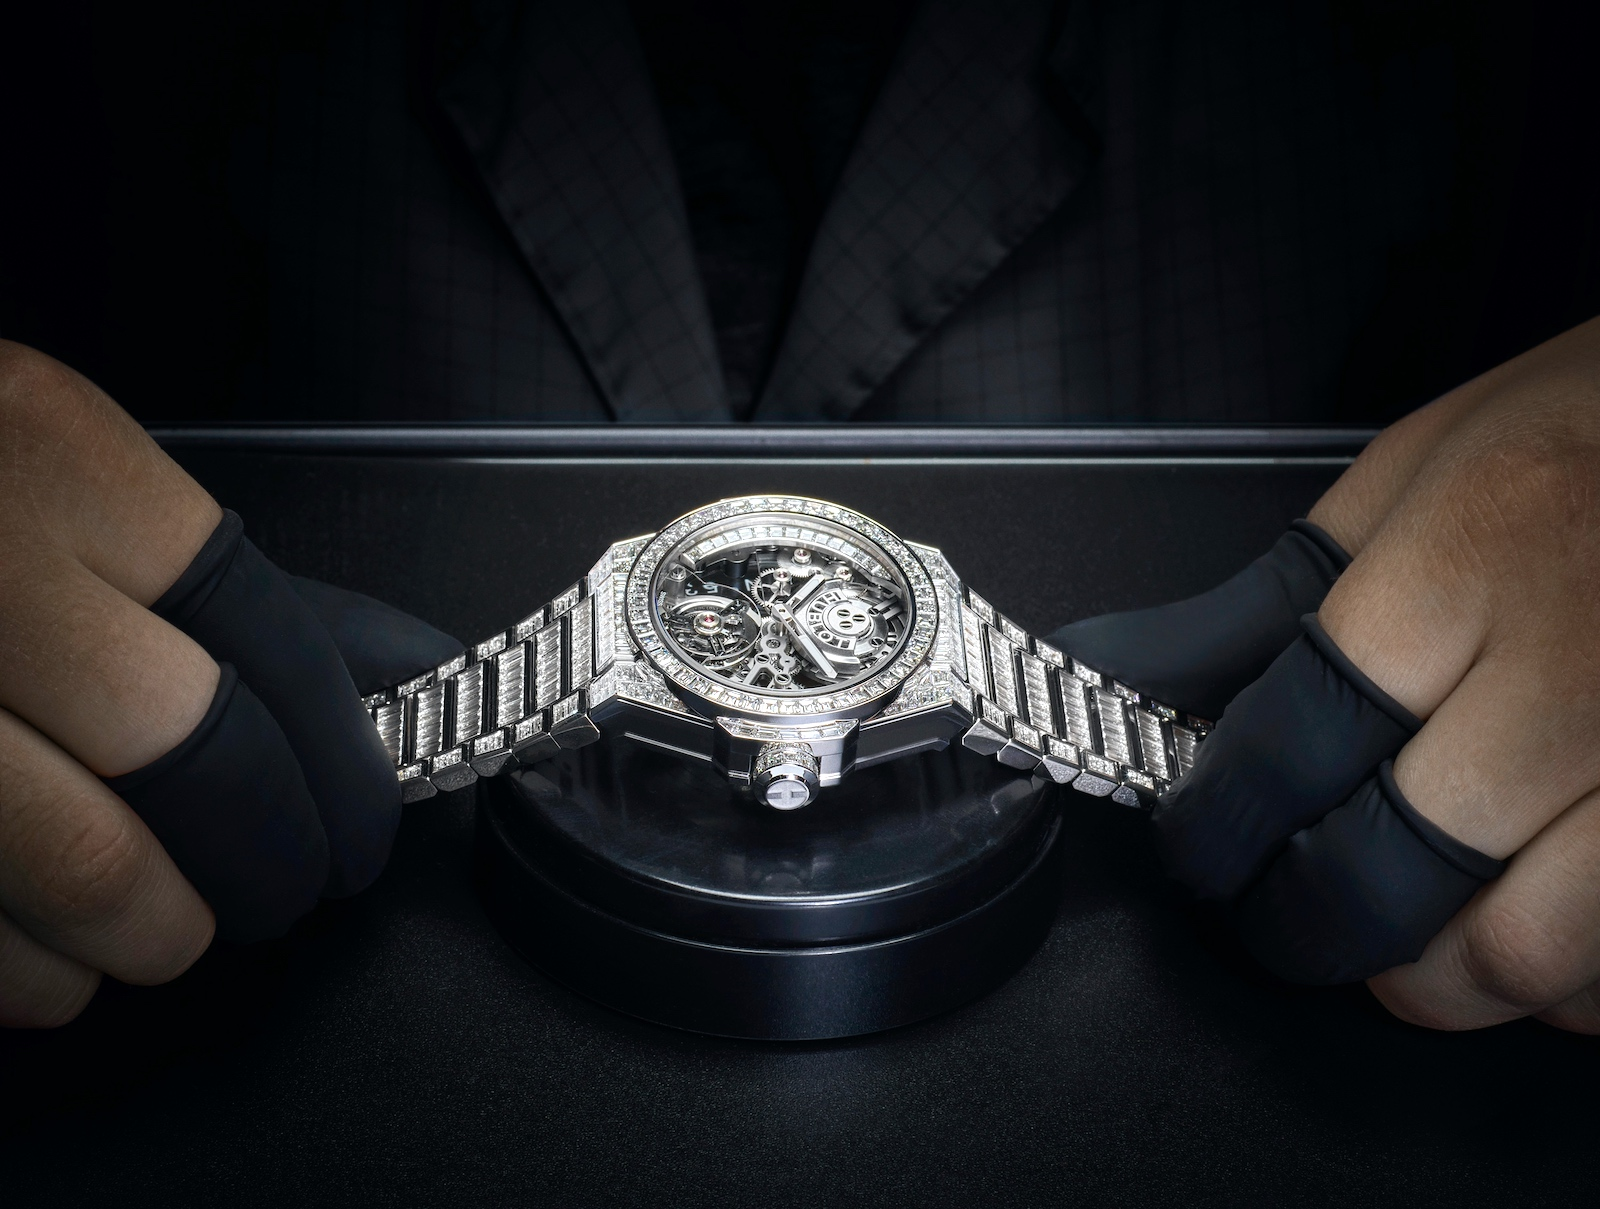 Hublot en Watches and Wonders 2021 - Big Bang Integral Tourbillon High Jewellery